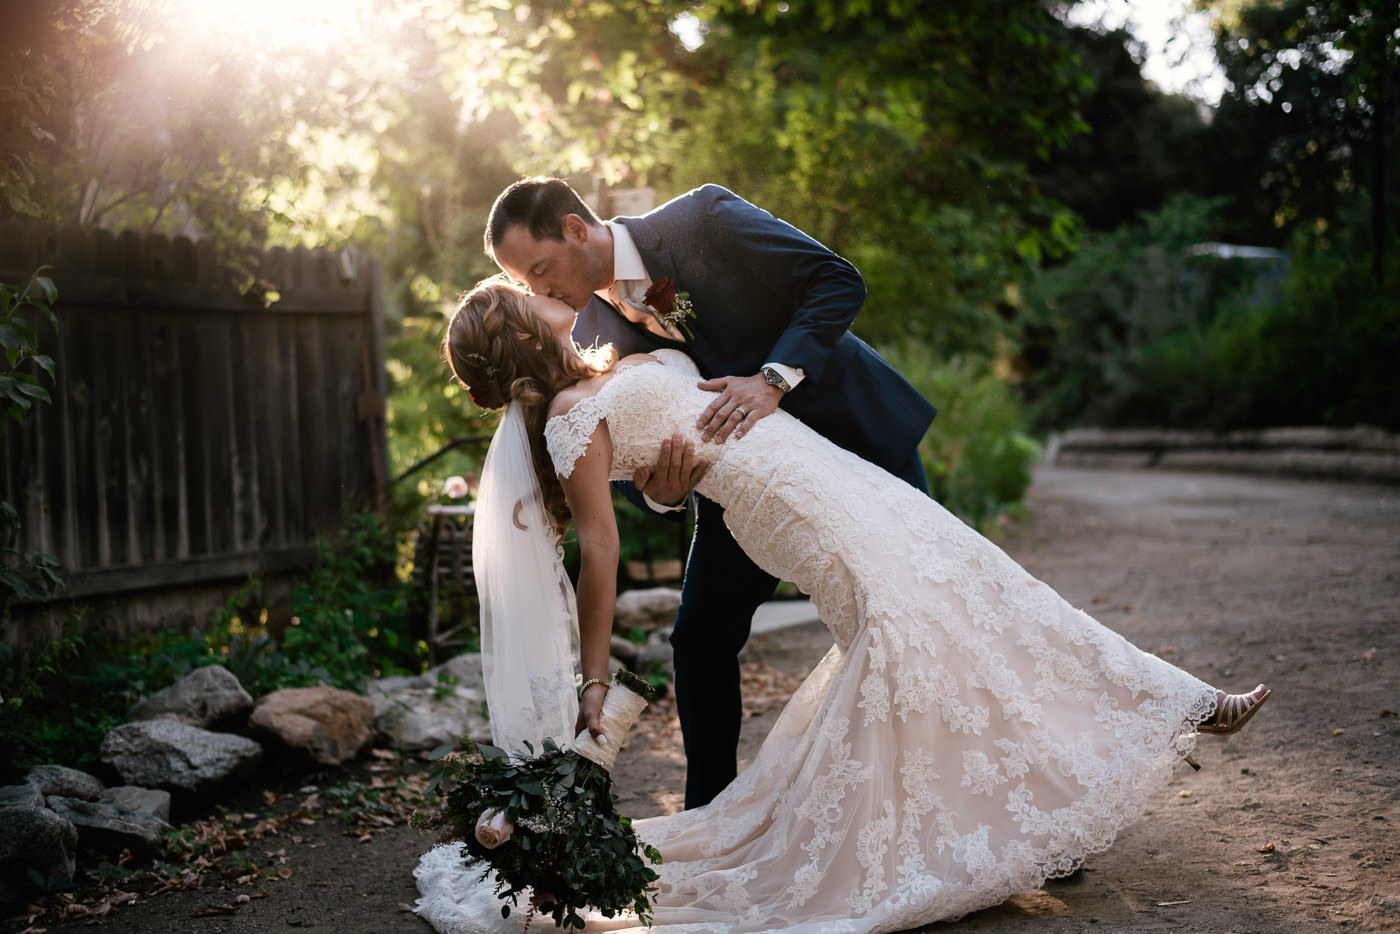 Groom dips his bride and gives her a tender kiss at The Homestead.